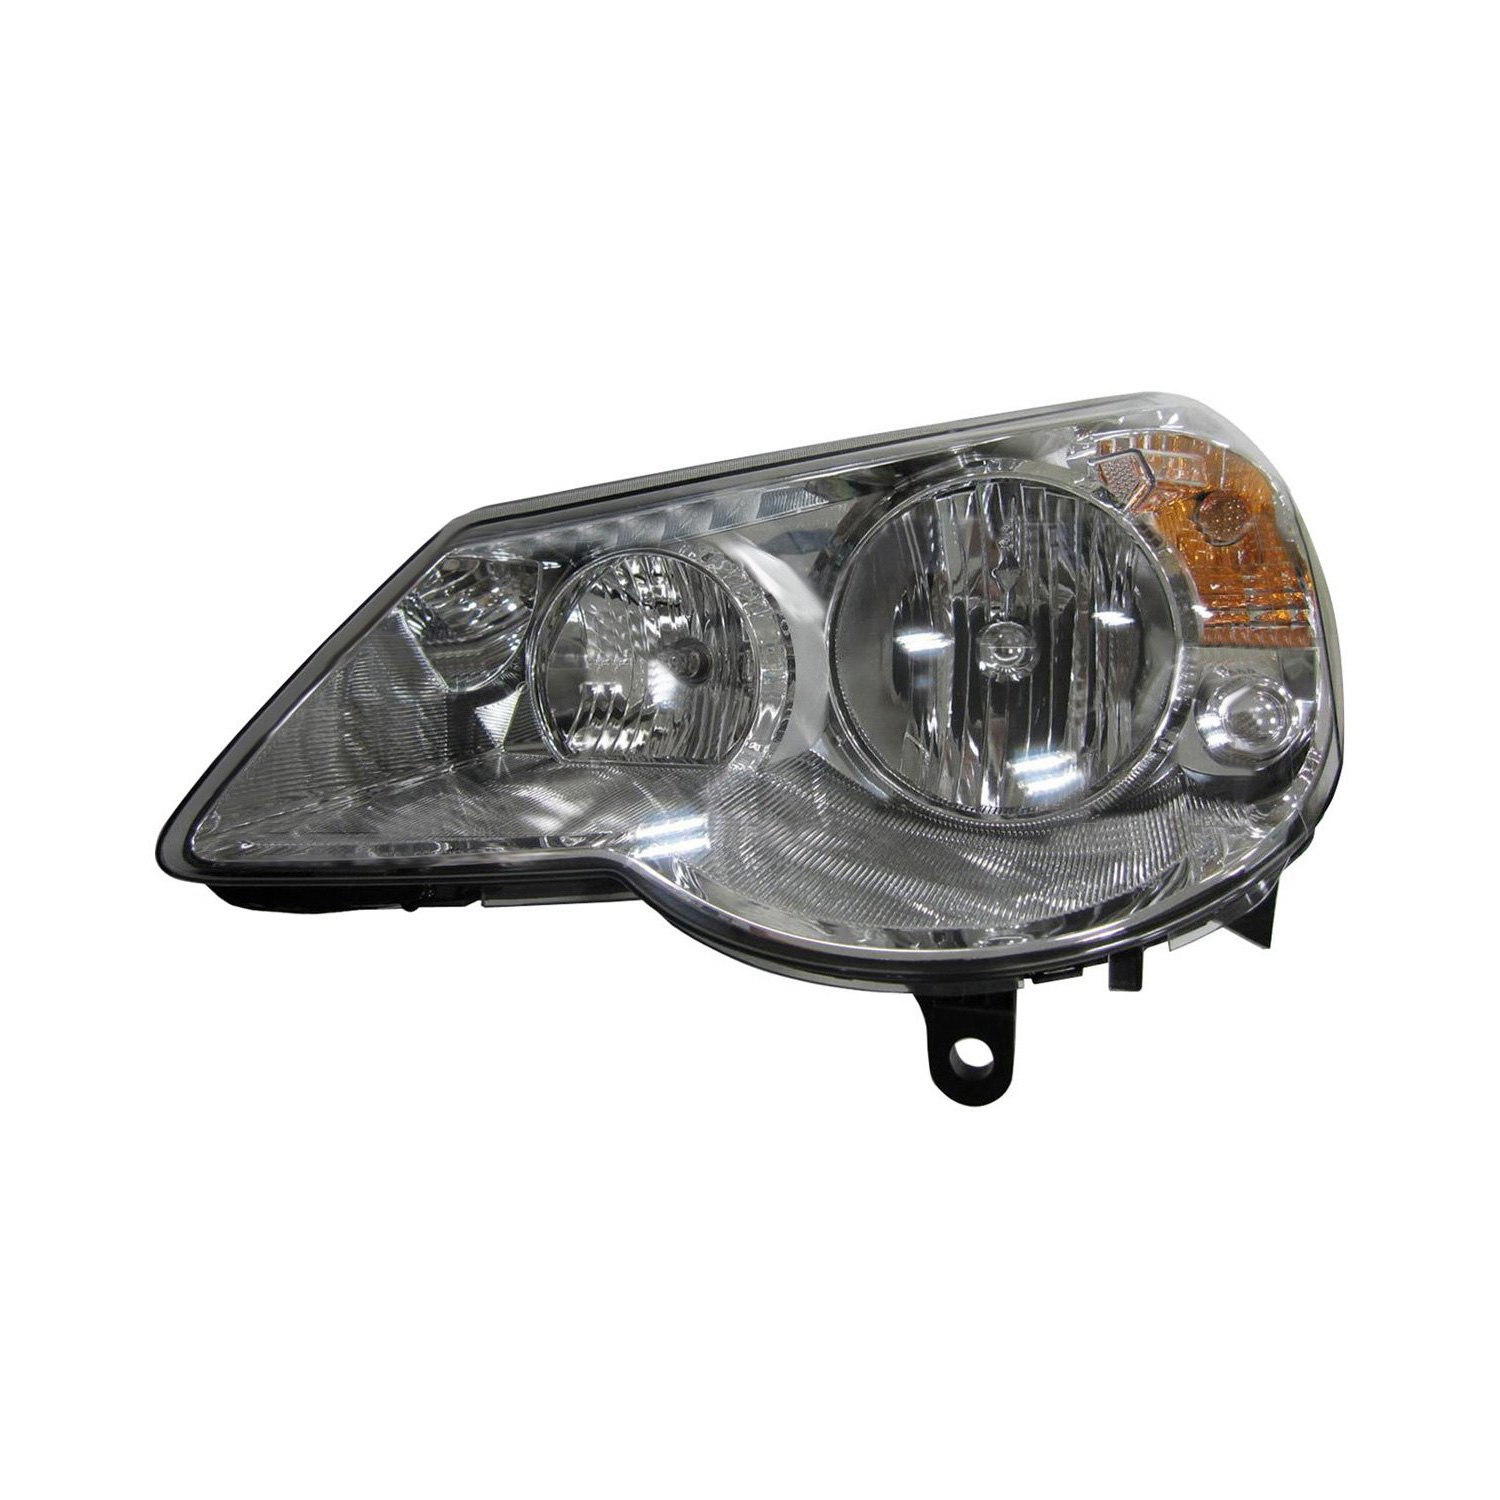 Chrysler Sebring 2007-2010 Replacement Headlight